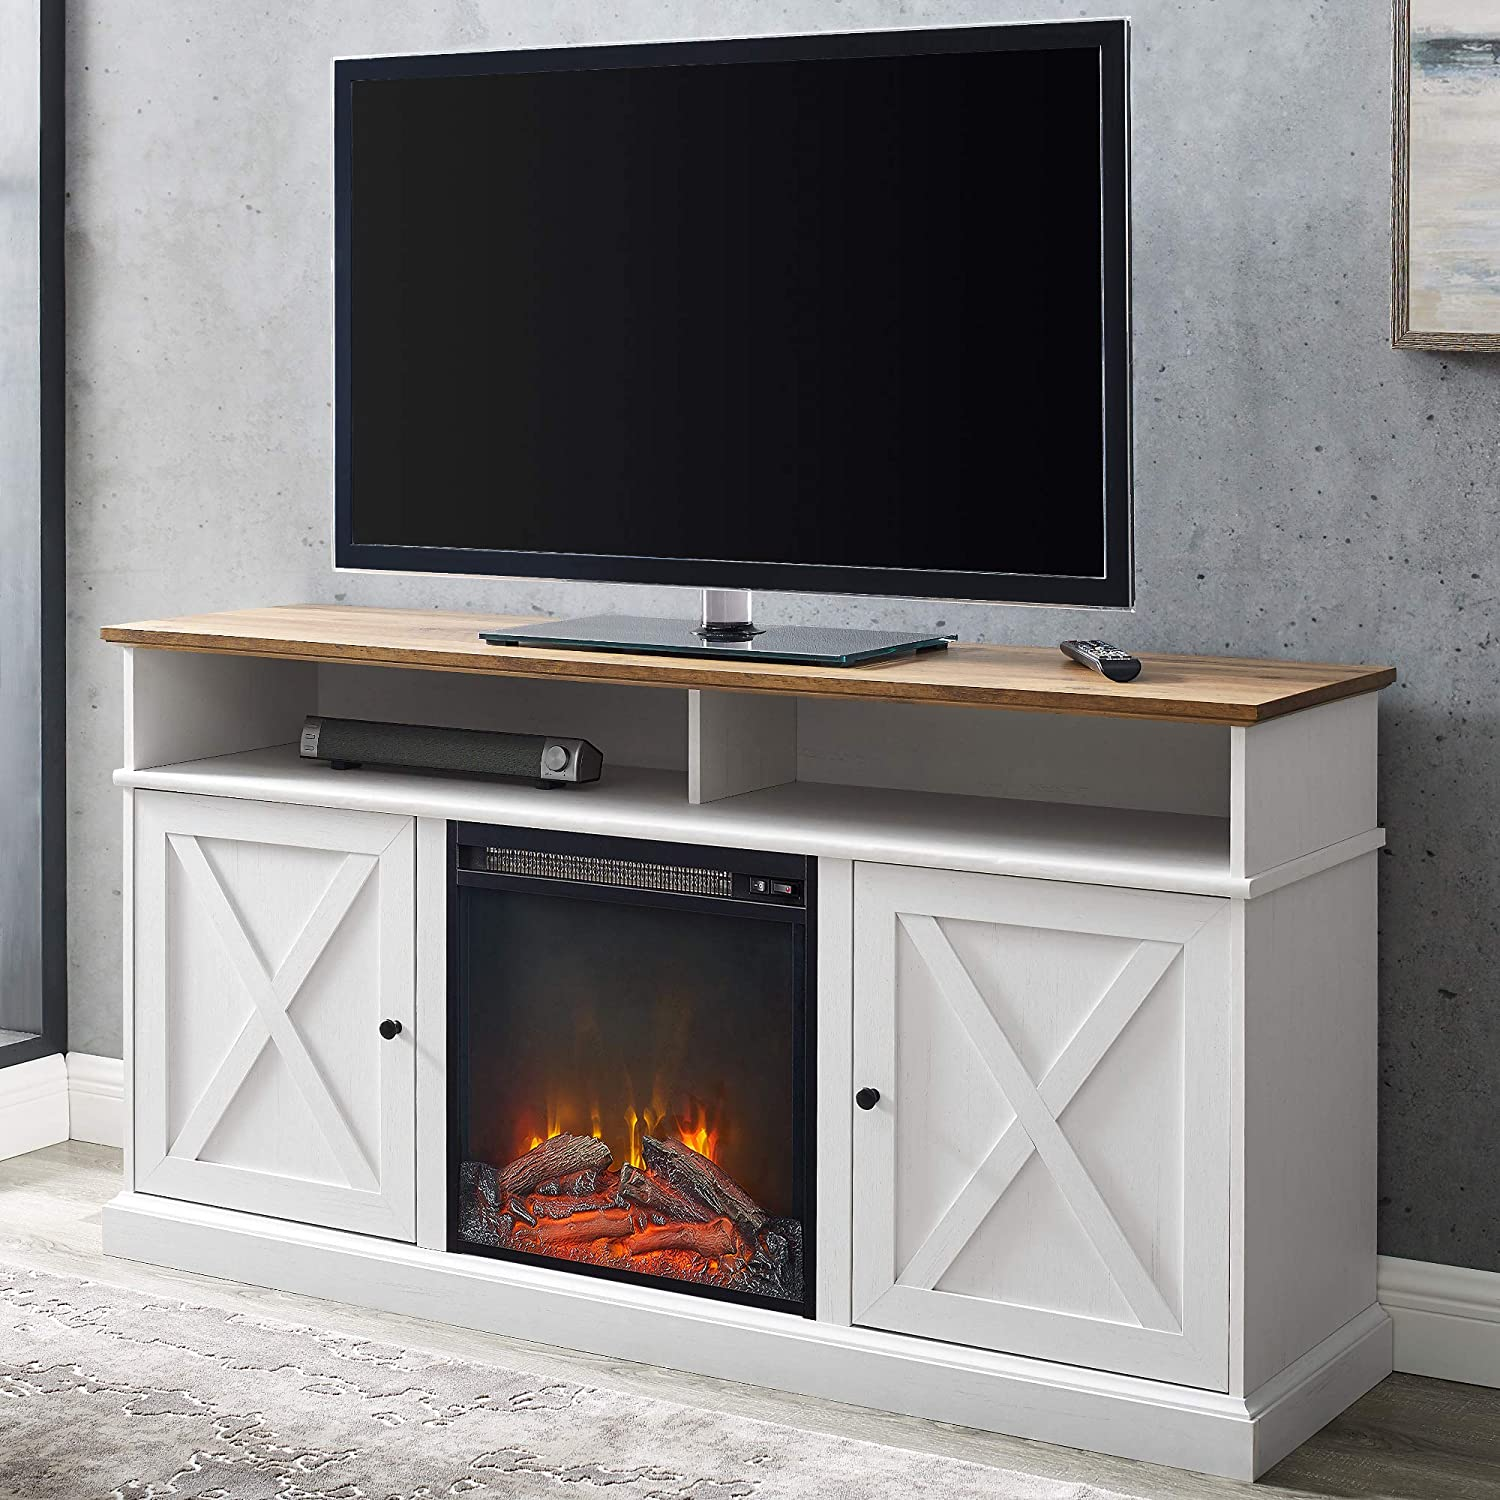 Walker Edison Atticus Farmhouse Tall X Barn Door Fireplace Stand for TVs up to 65 Inches, Reclaimed Barnwood/White